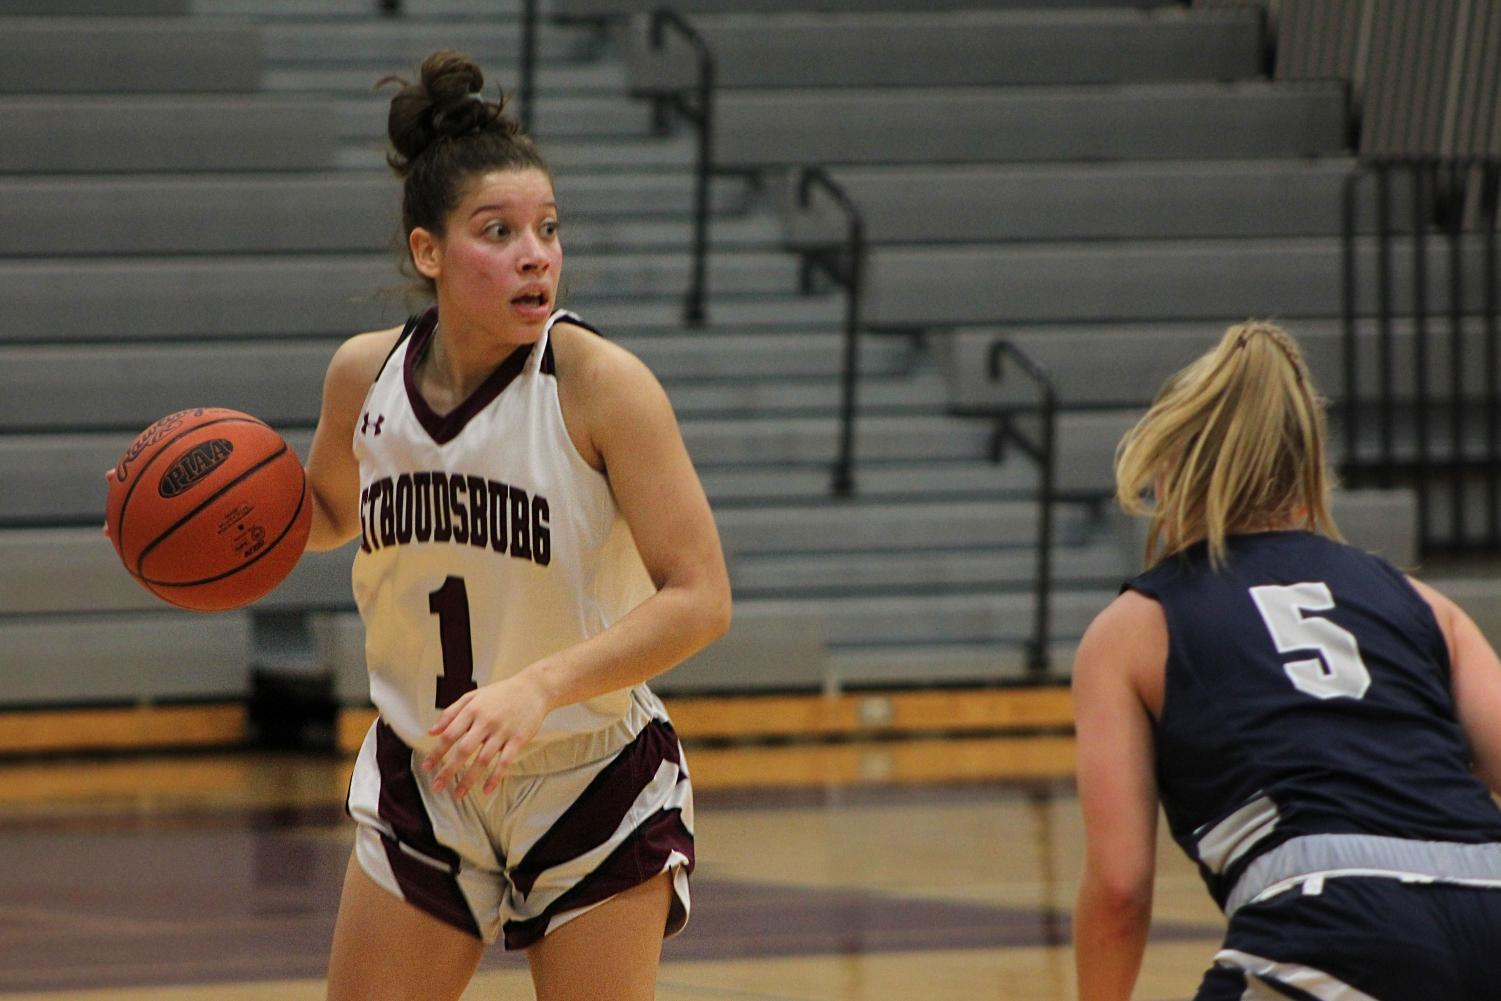 Girls Varsity Basketball player Samantha Columna about to pass the ball to a teammate.